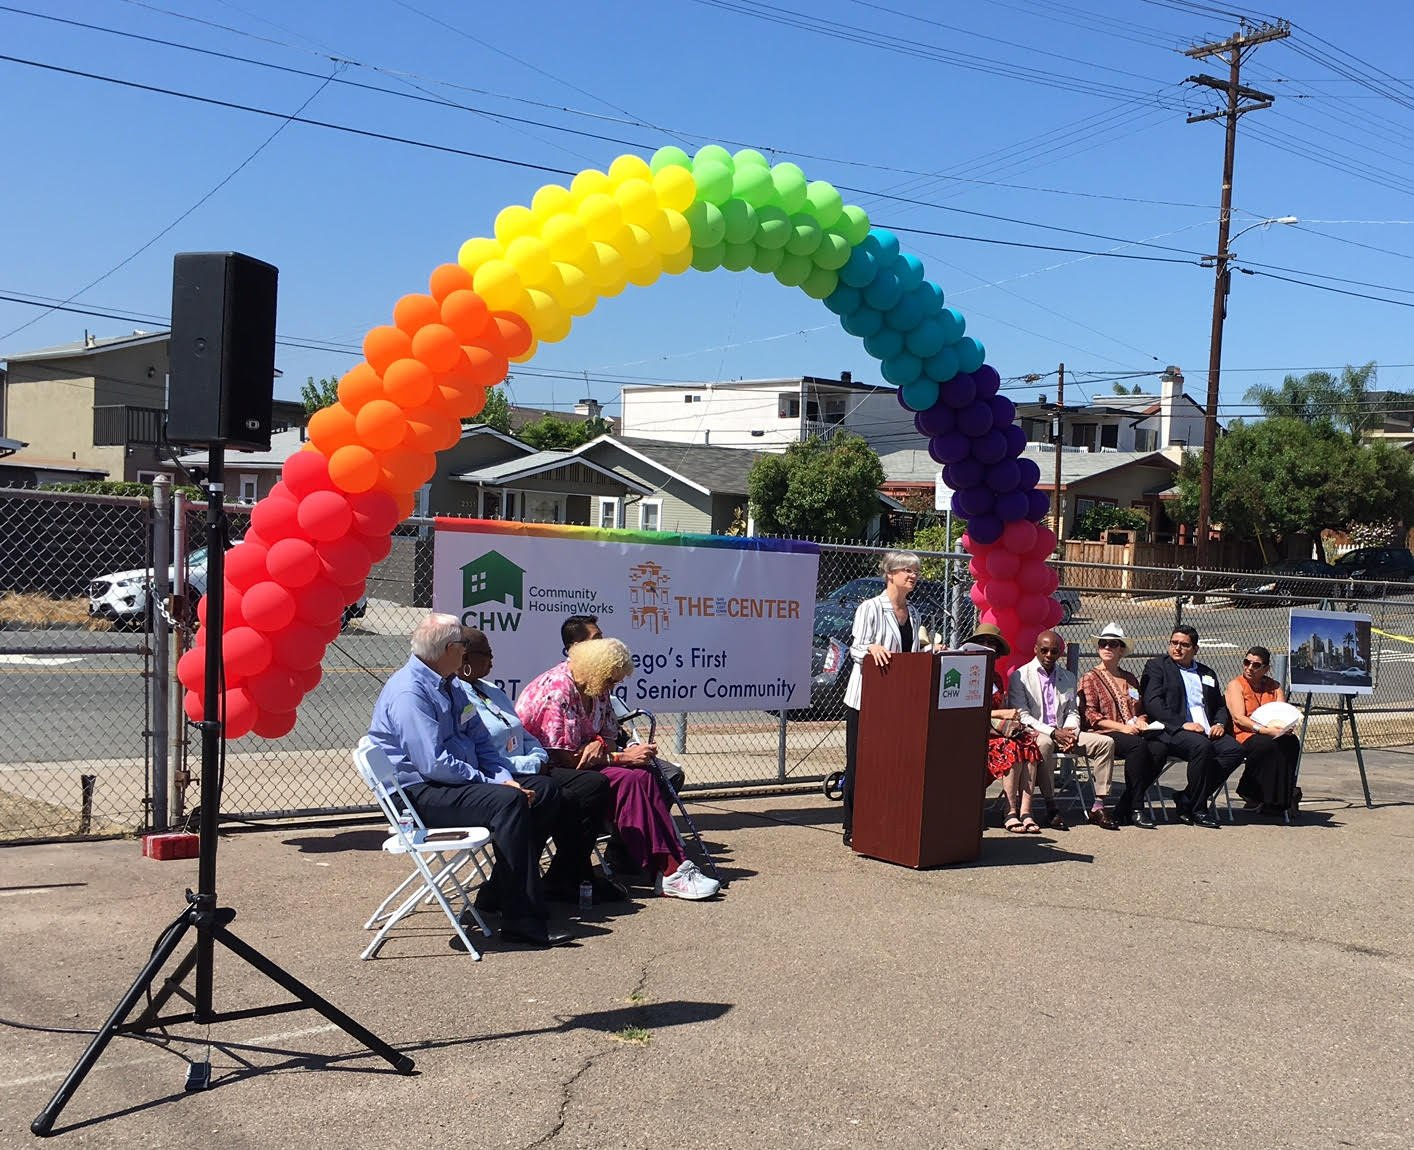 Sue Reynolds, President and CEO of Community HousingWorks, at Wednesday's groundbreaking ceremony.